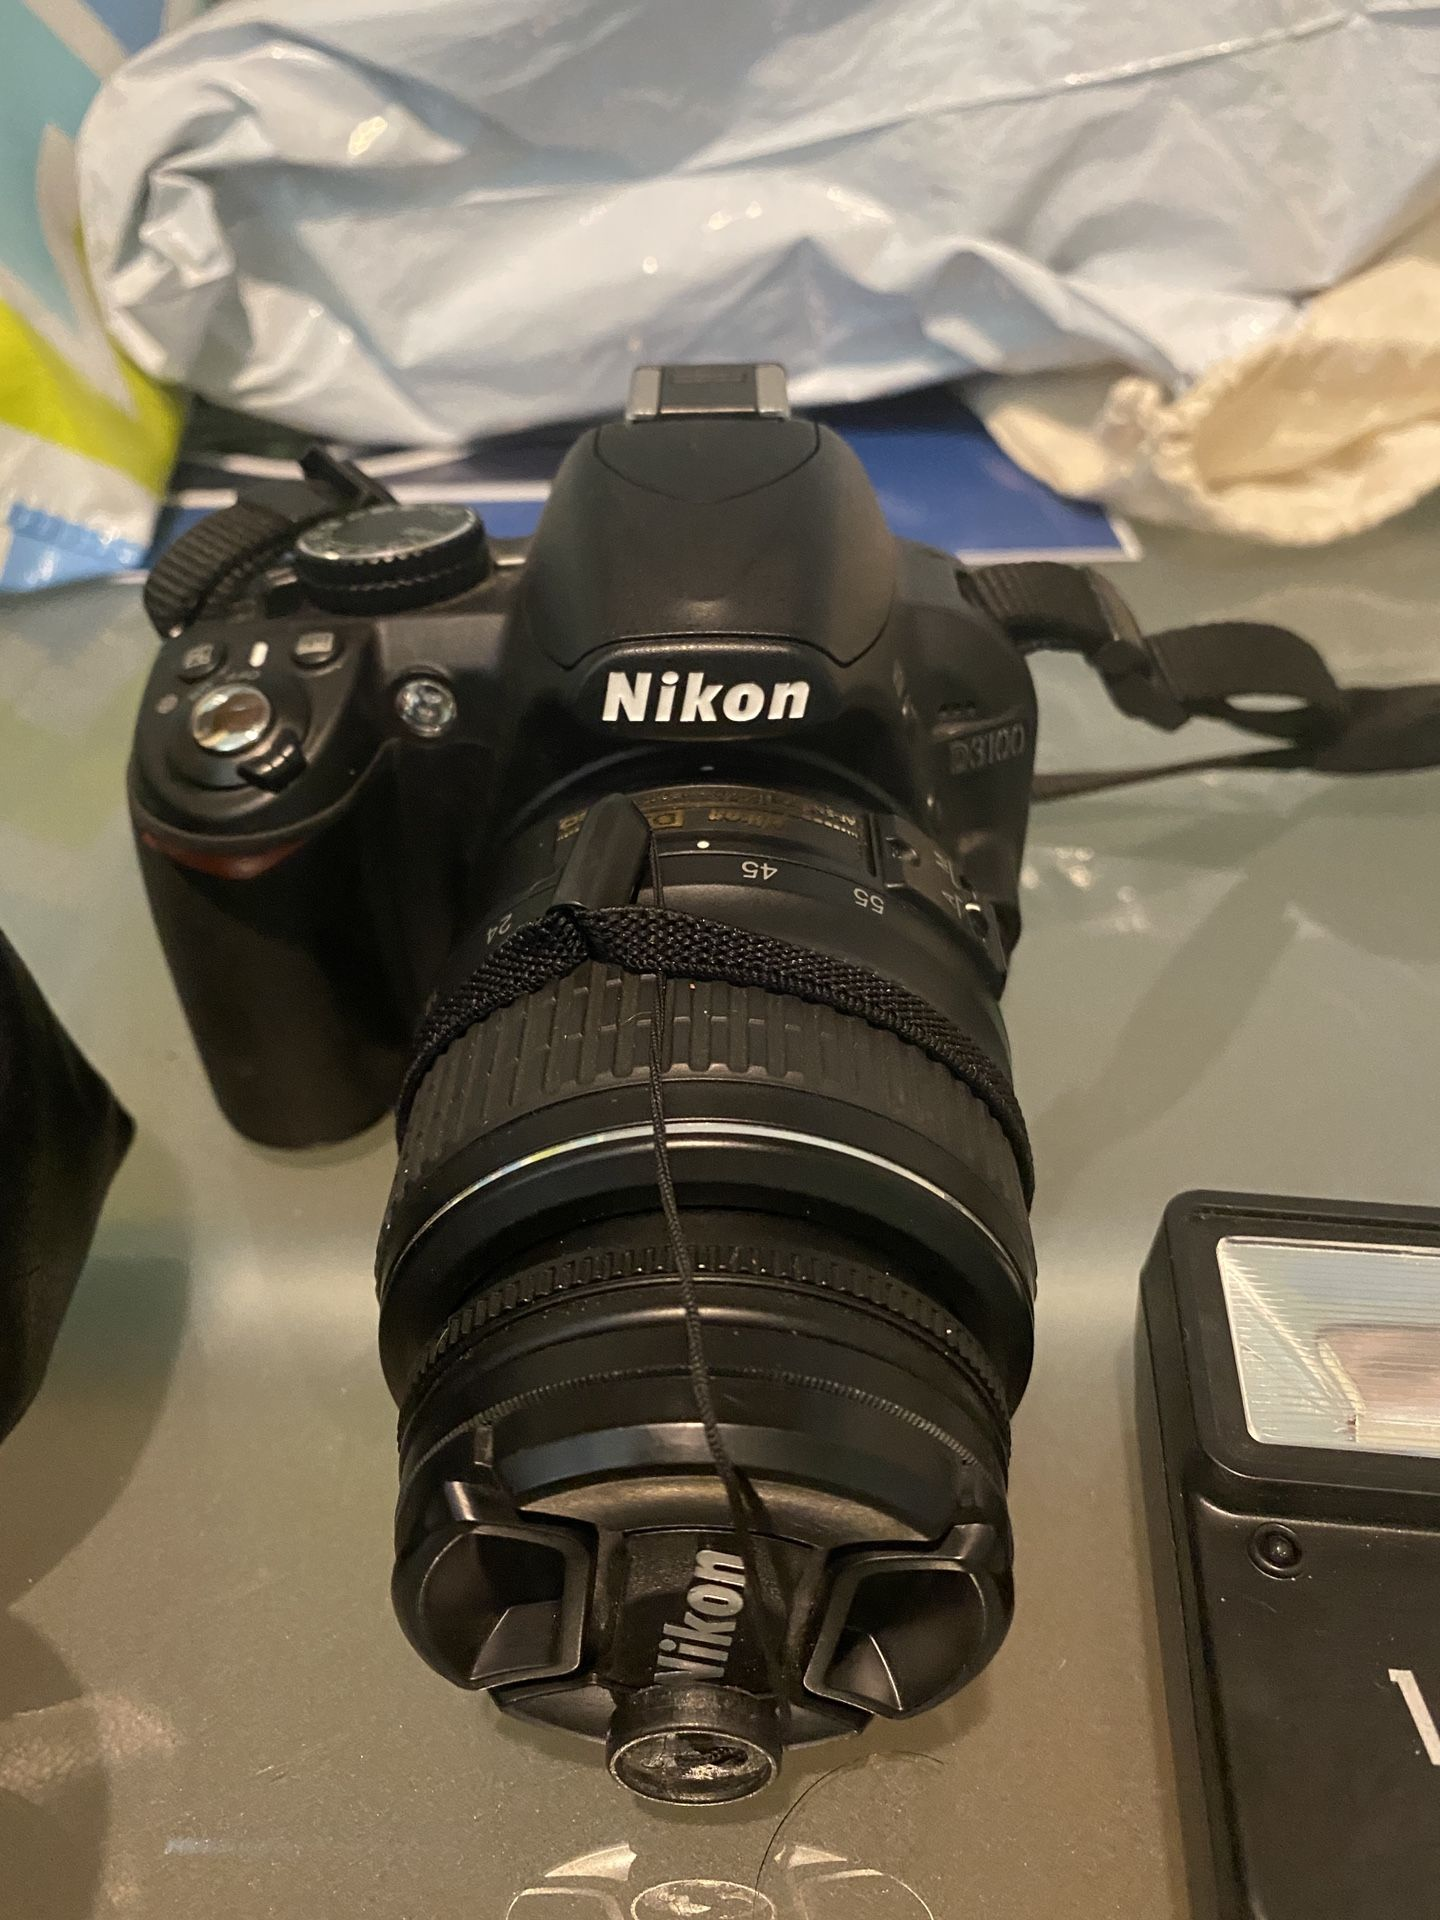 Nikon D3100 with multiple attachments